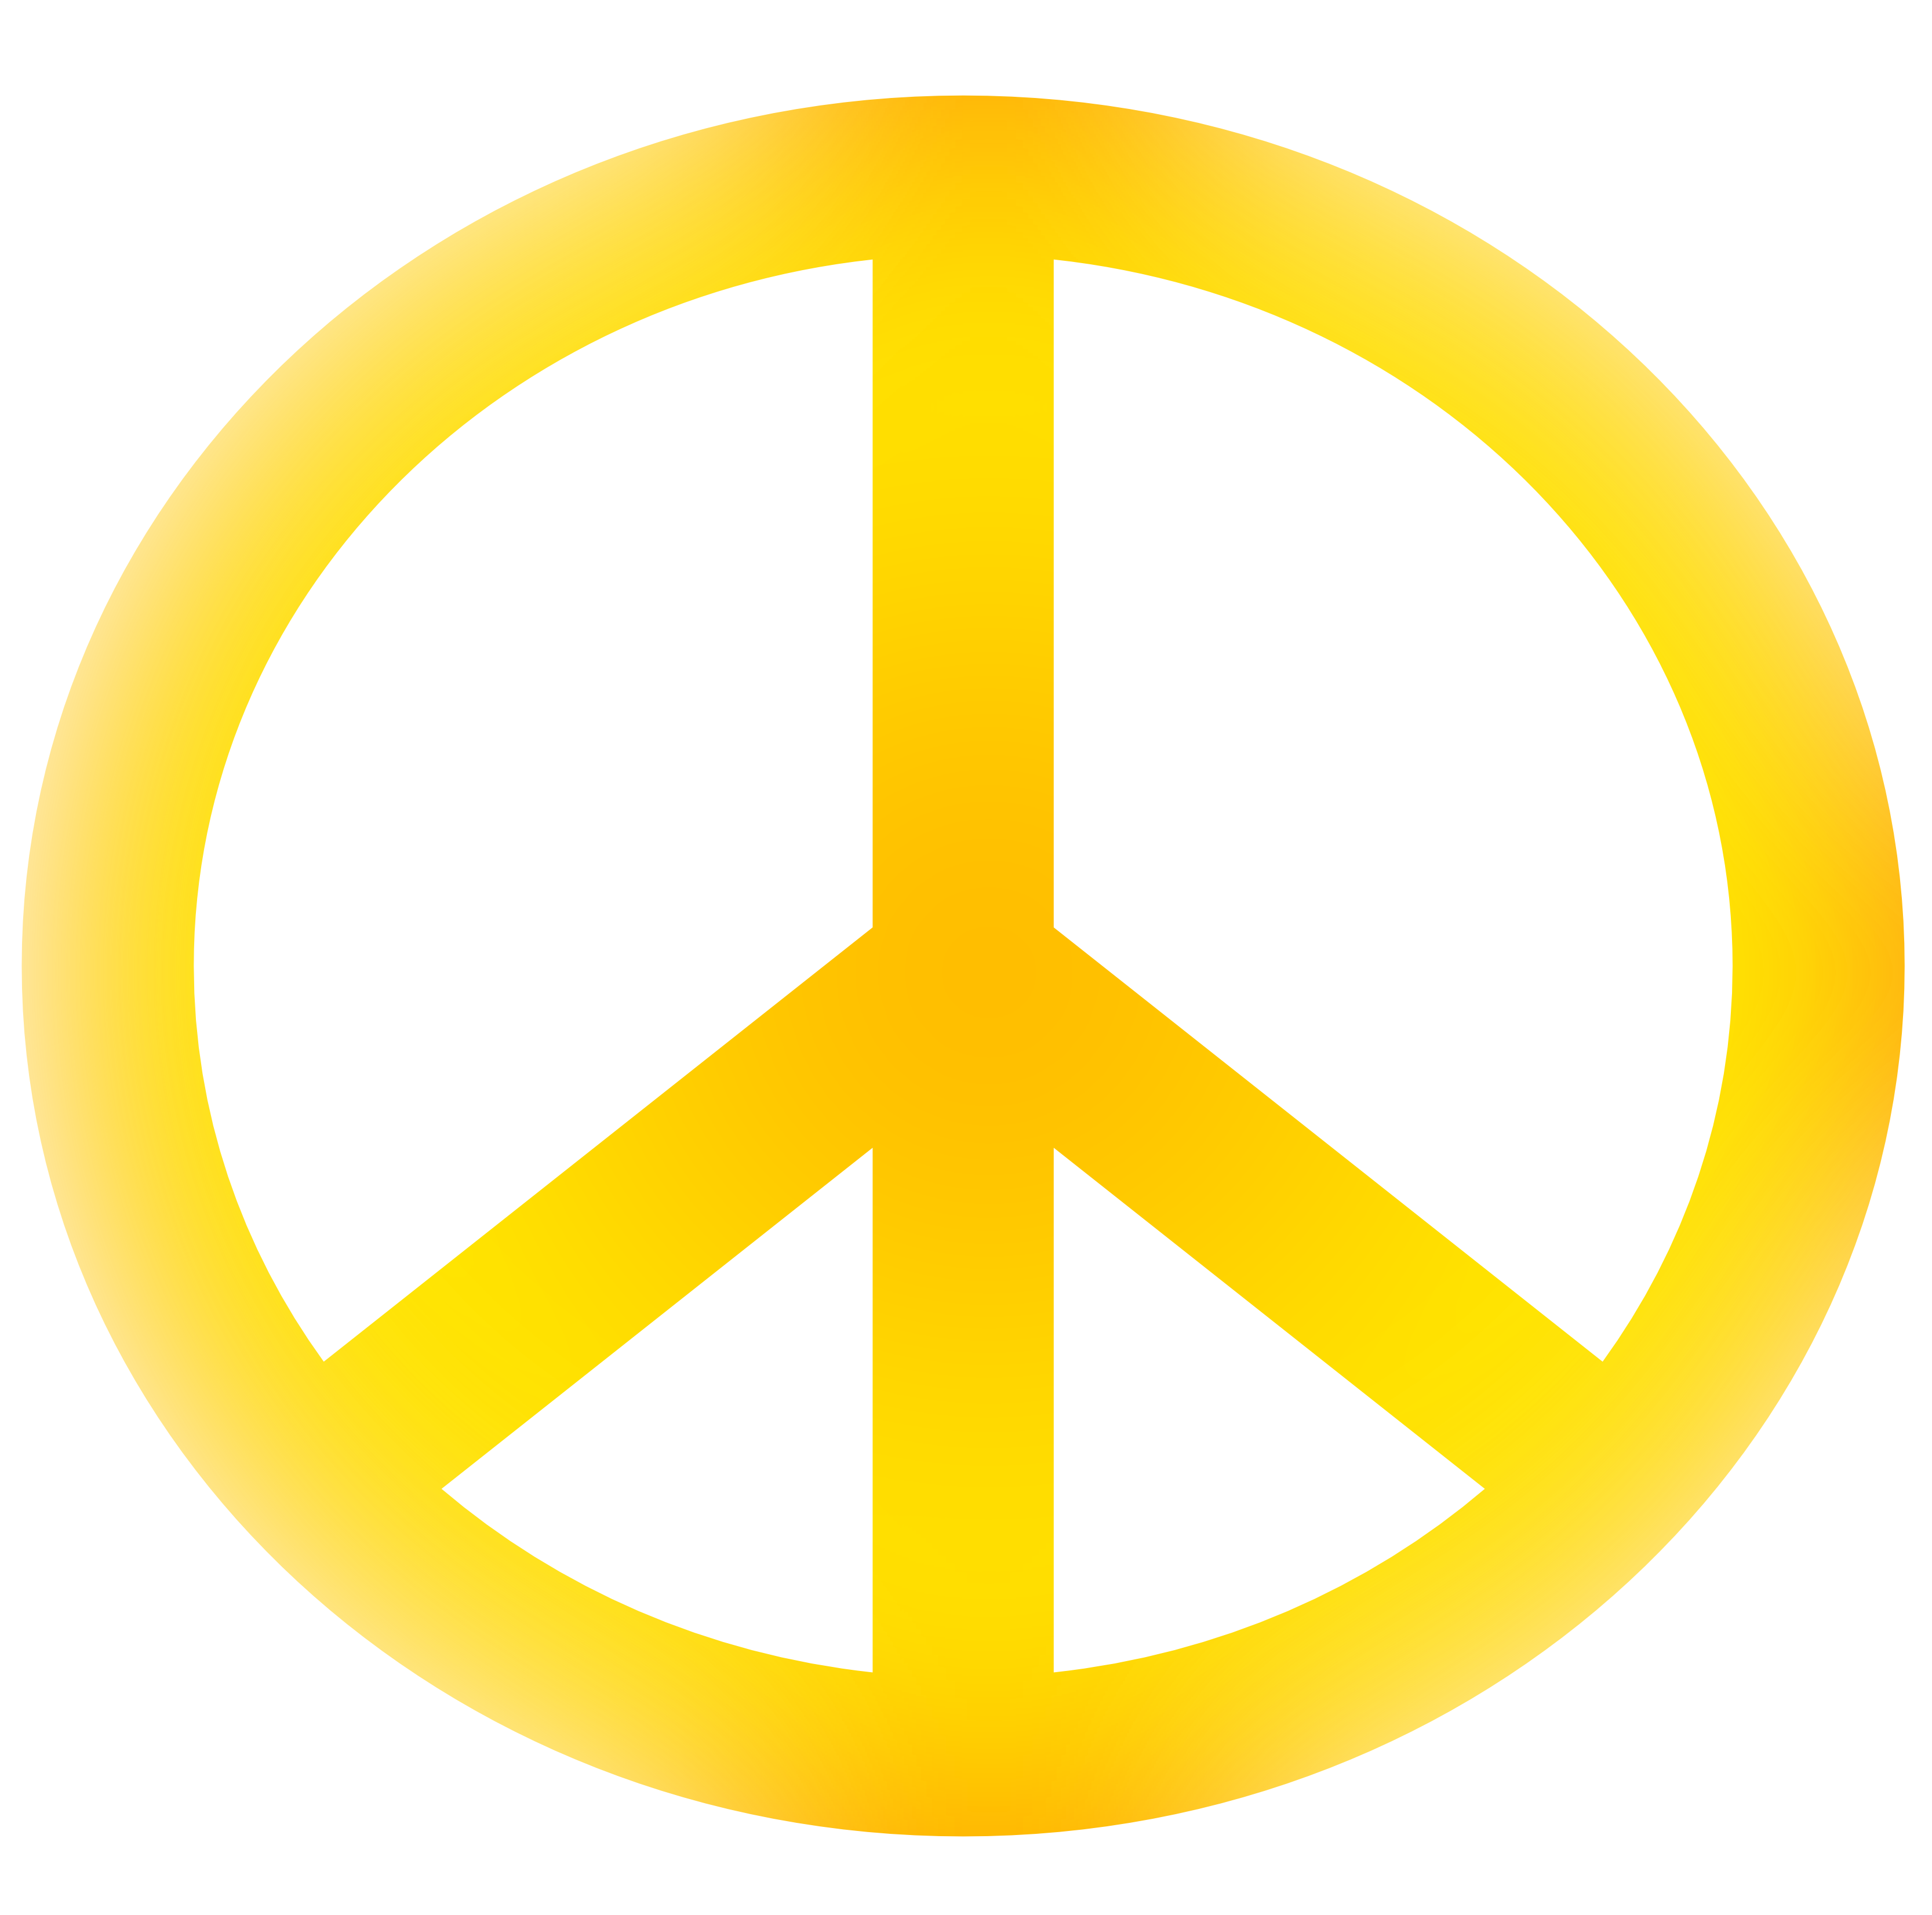 Download PNG image - Peace Symbol Png Hd - Hippie PNG HD